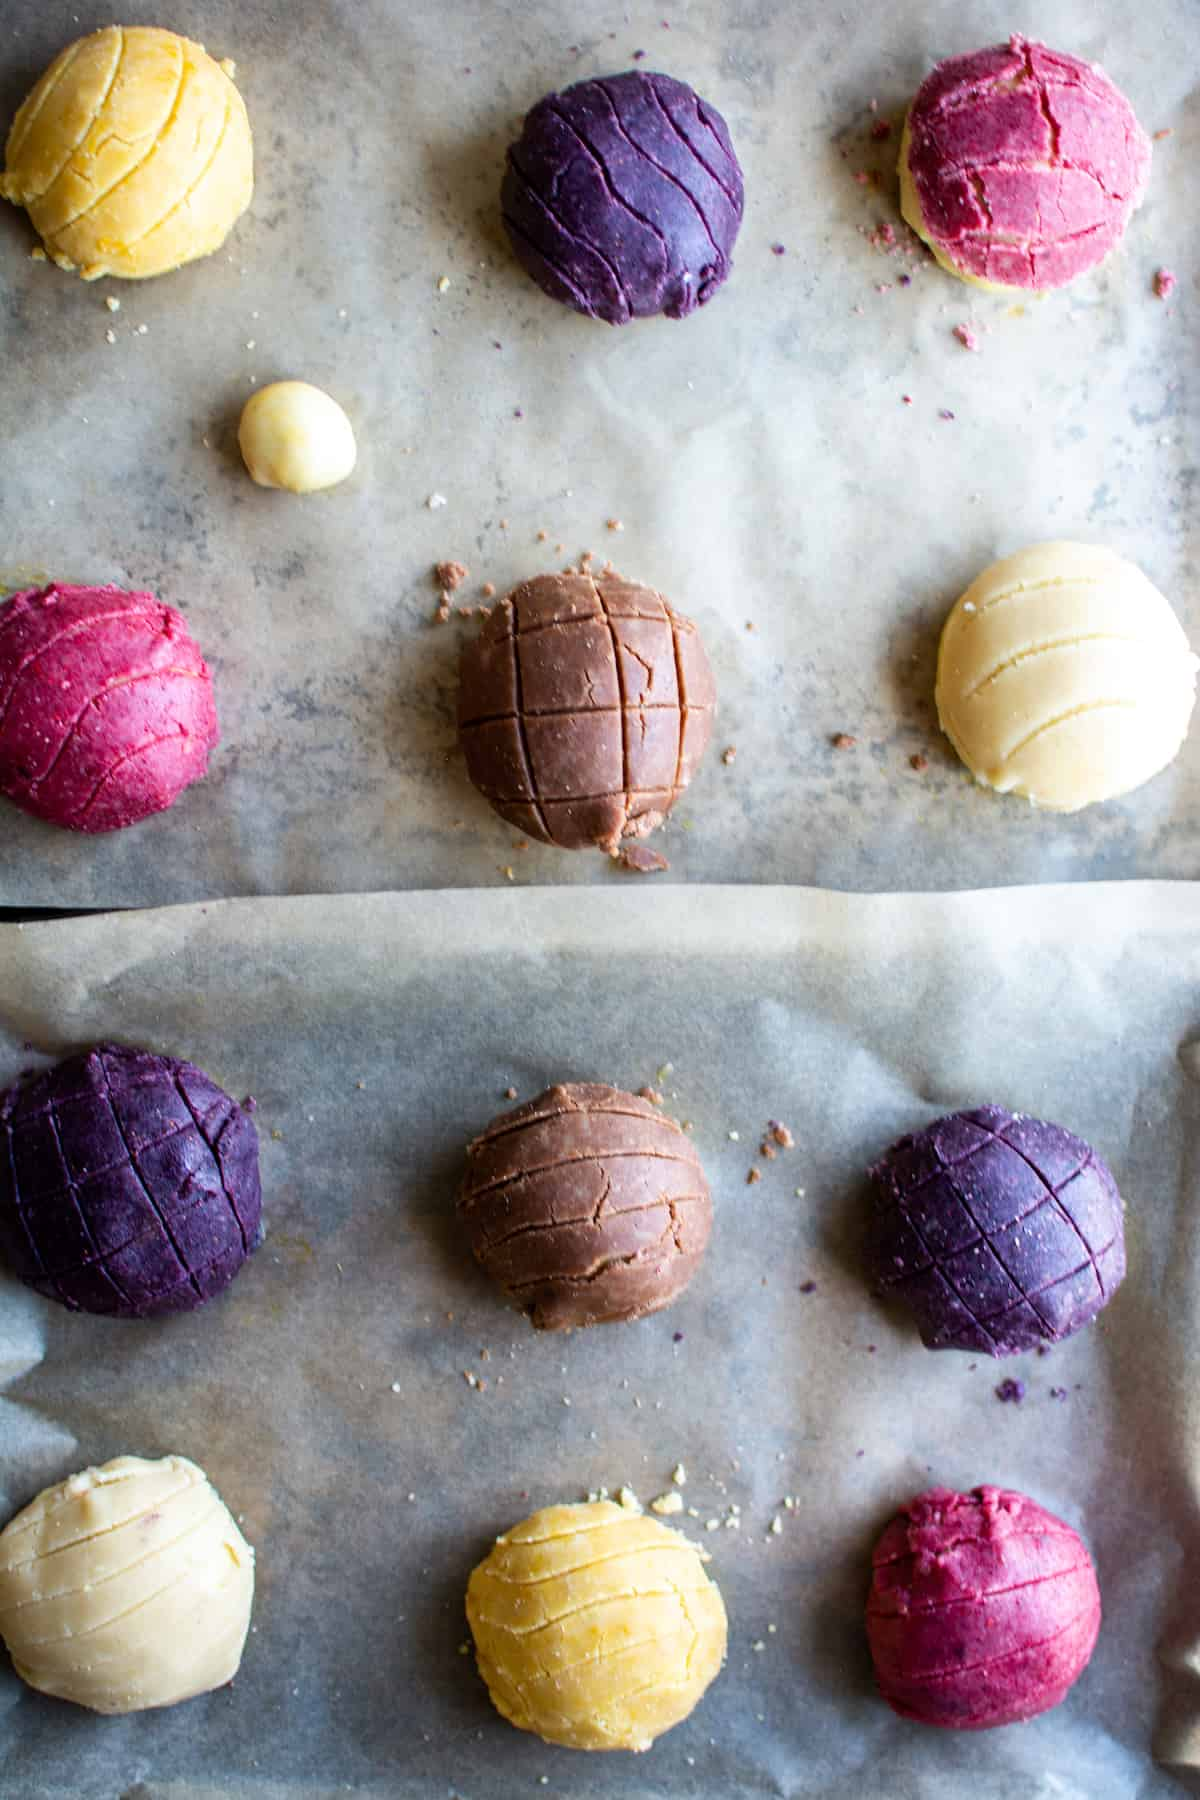 12 Concha rolls of different colors (yellow, purple, pink, brown, and white) sitting on parchment lined baking sheets.